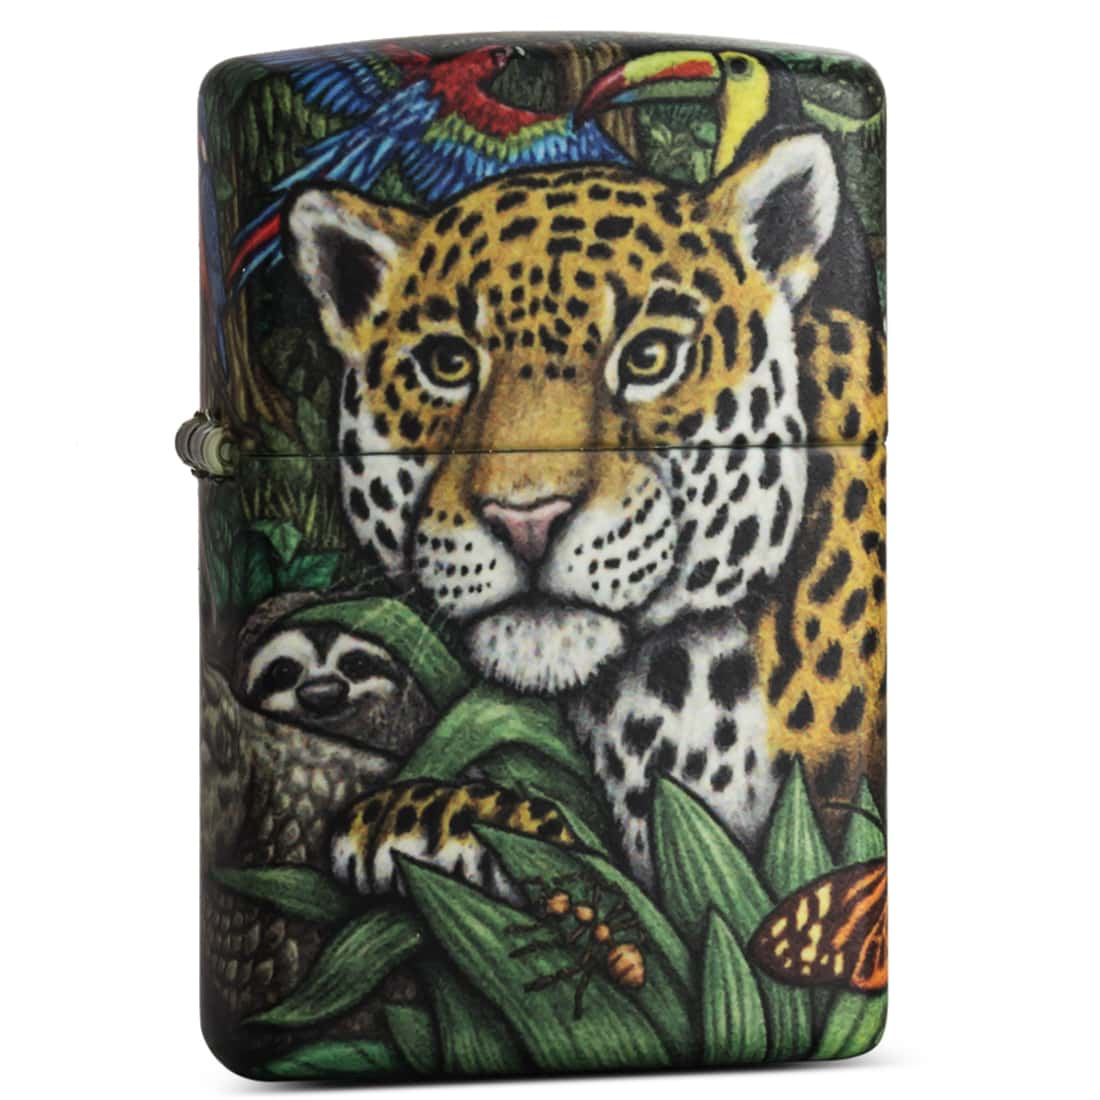 Photo #3 de Zippo Collector Mysteries of the Forest 2 Zippo